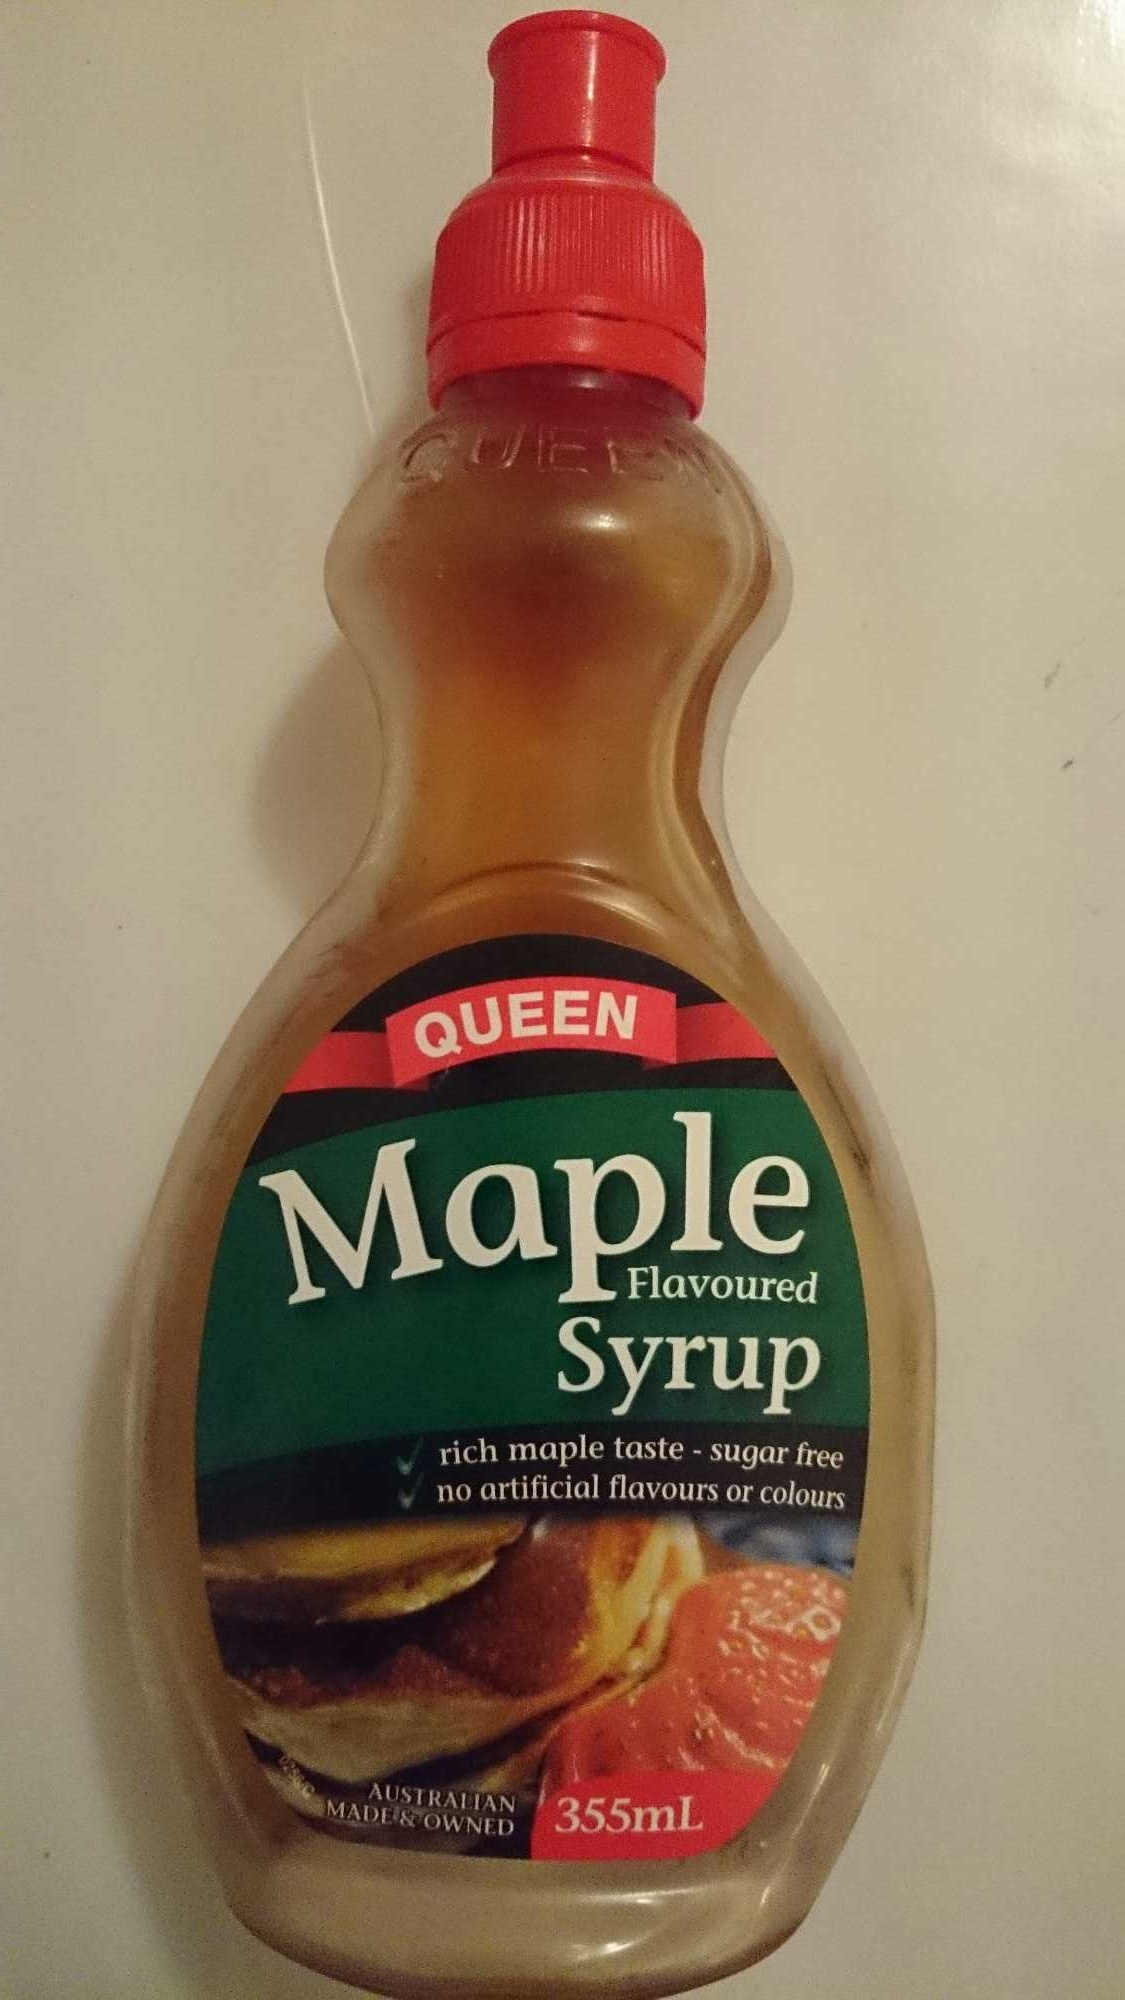 how to open maple syrup bottle wax